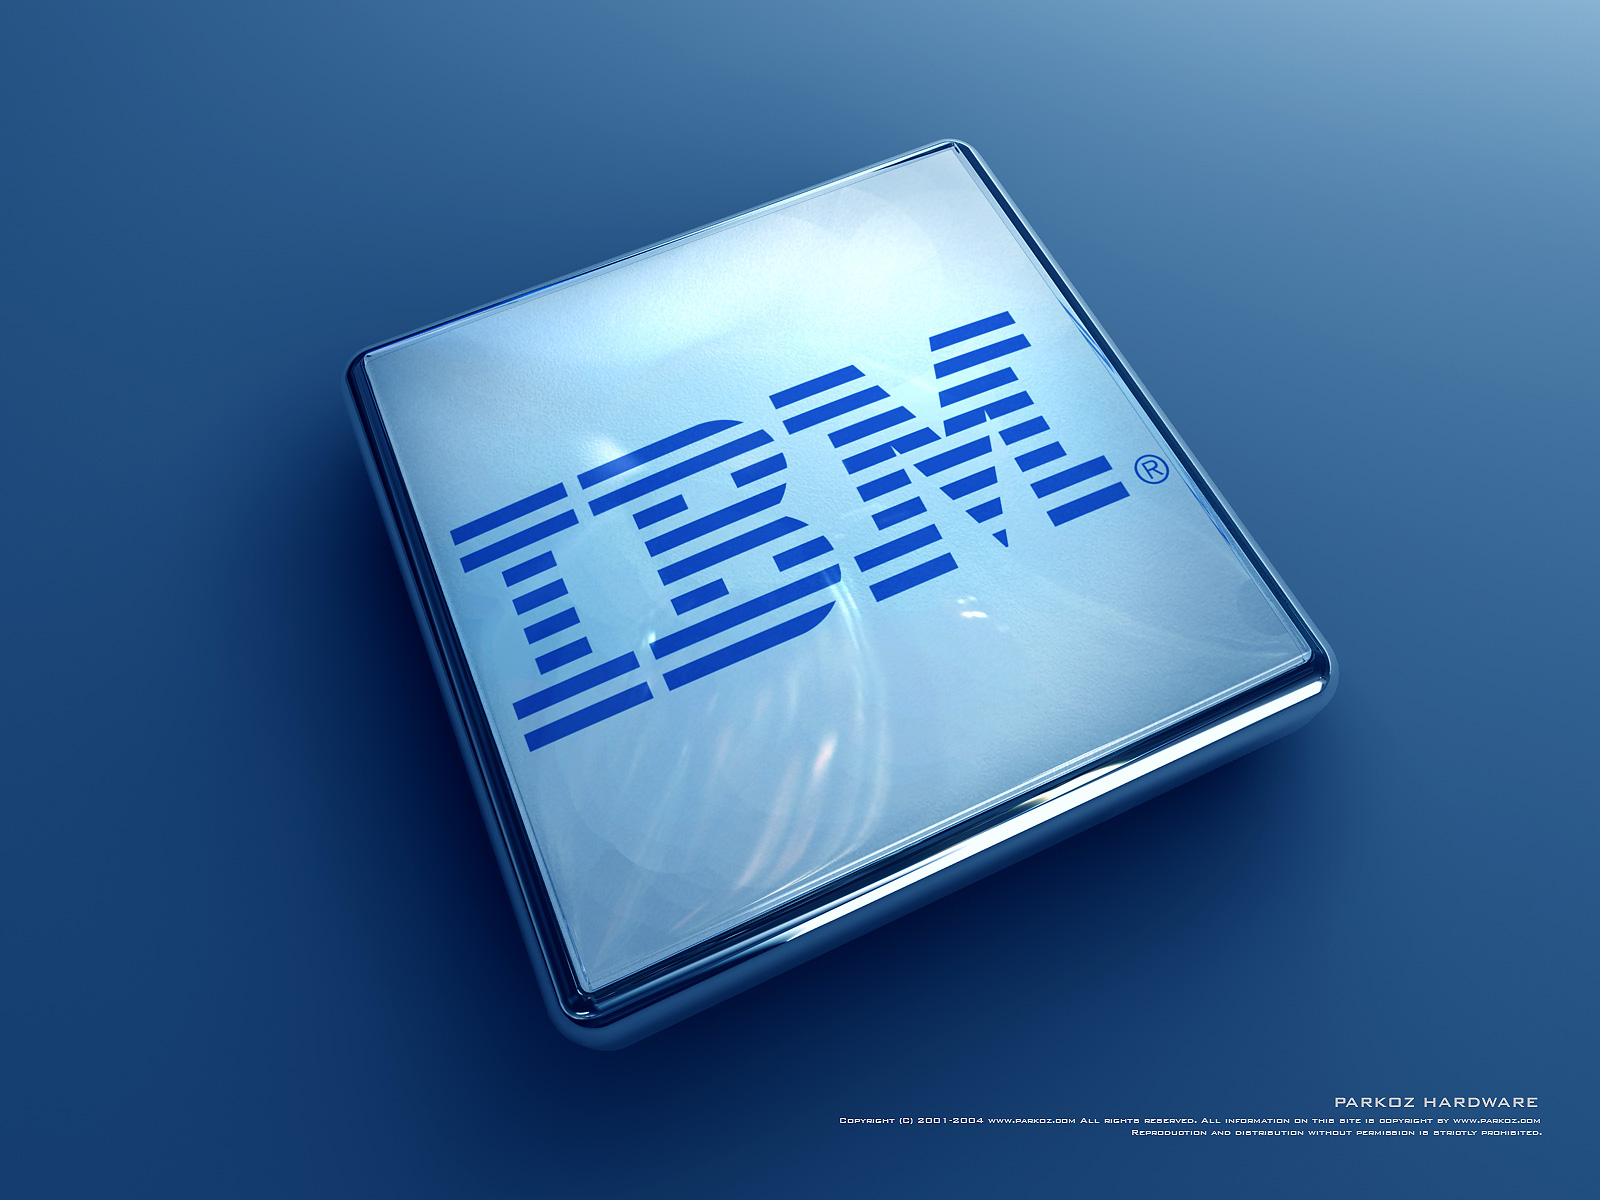 Hd Wallpapers Ibm Wallpapers Download Samsung Logo Hd 1080p 1600x1200 Download Hd Wallpaper Wallpapertip